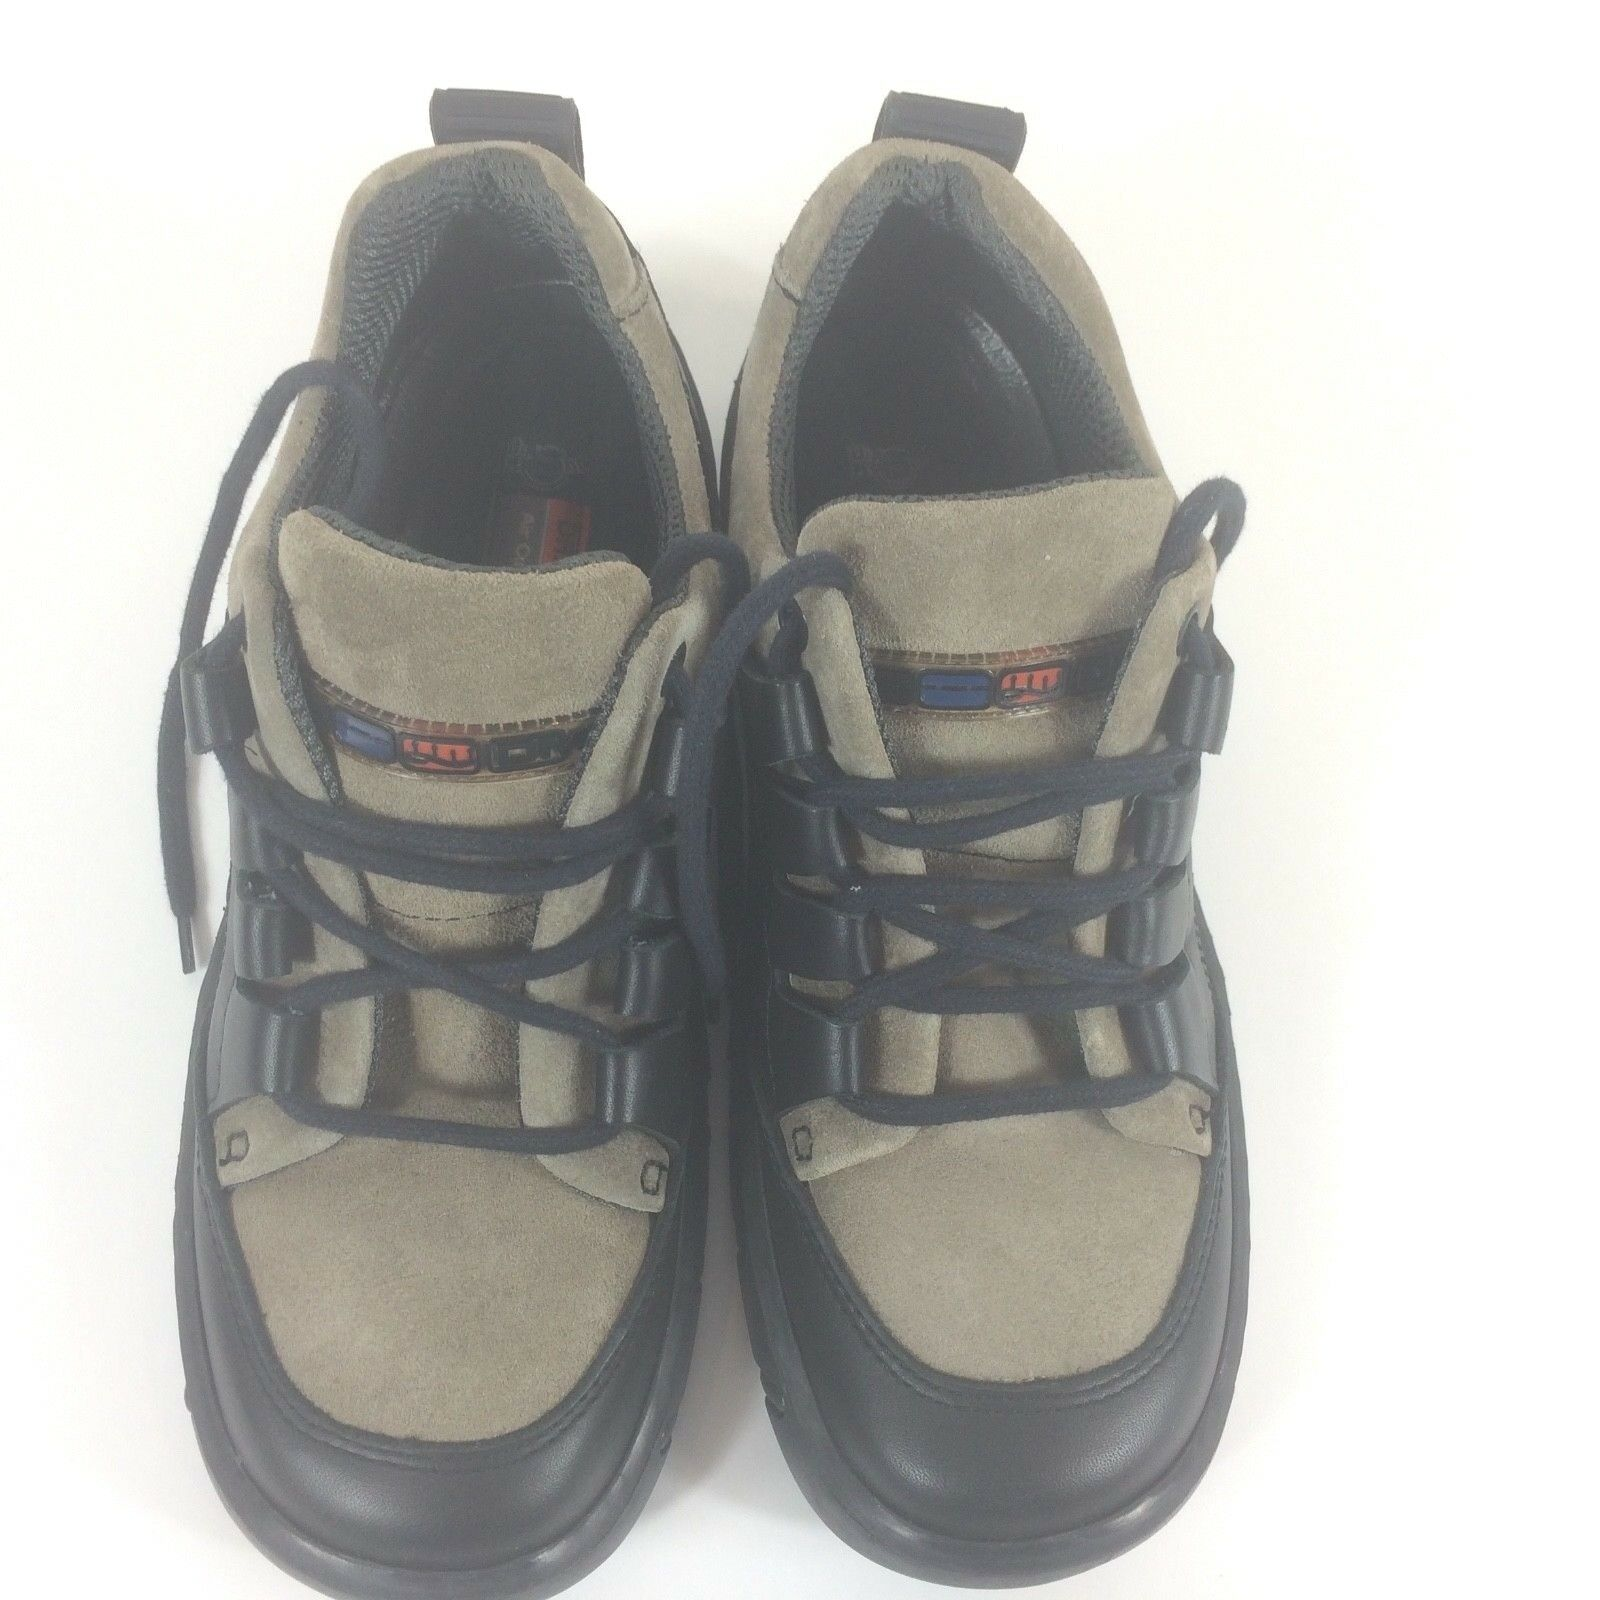 Dr. Martens 9563 AW004 Air Cushioned Tan and Black Walking Shoes Women's Size 5